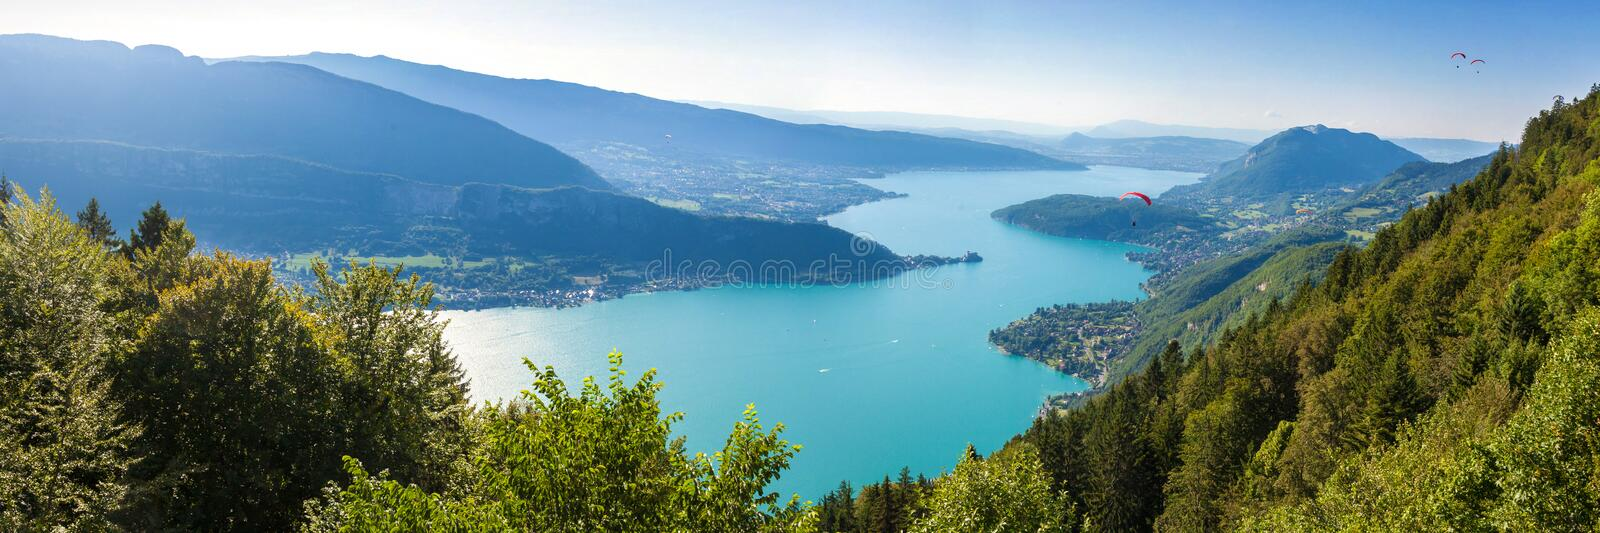 Panoramic view of the Annecy lake from the Col du Forclaz. Panoramic view of the Annecy lake from Col du Forclaz stock images